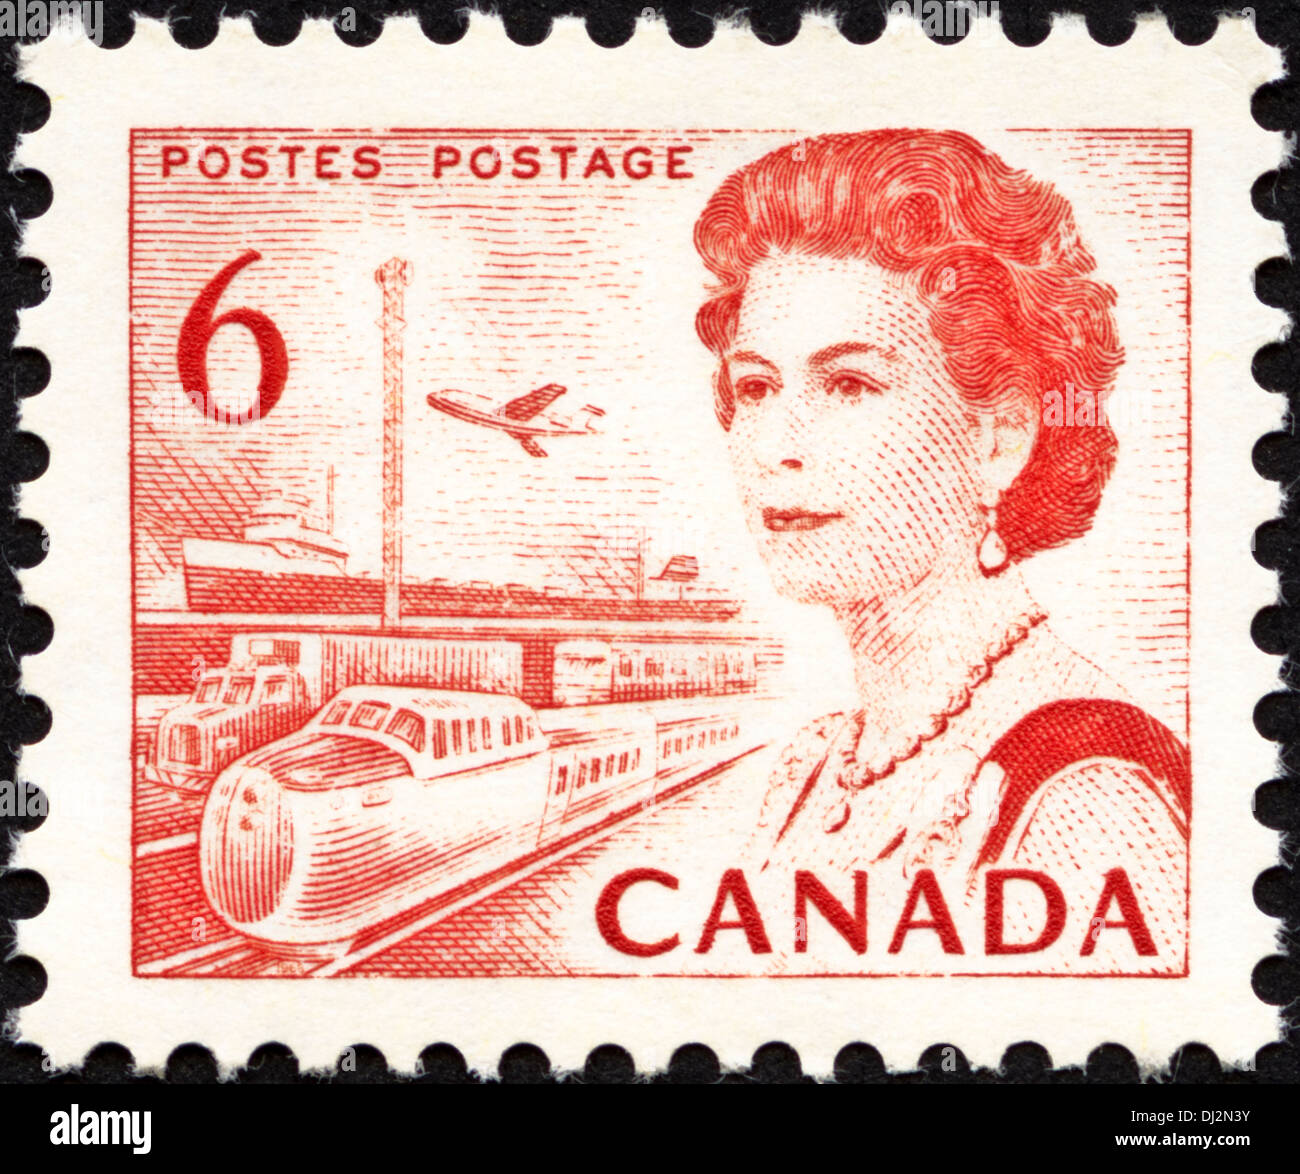 postage stamp Canada 6c featuring transport and communications dated 1968 - Stock Image